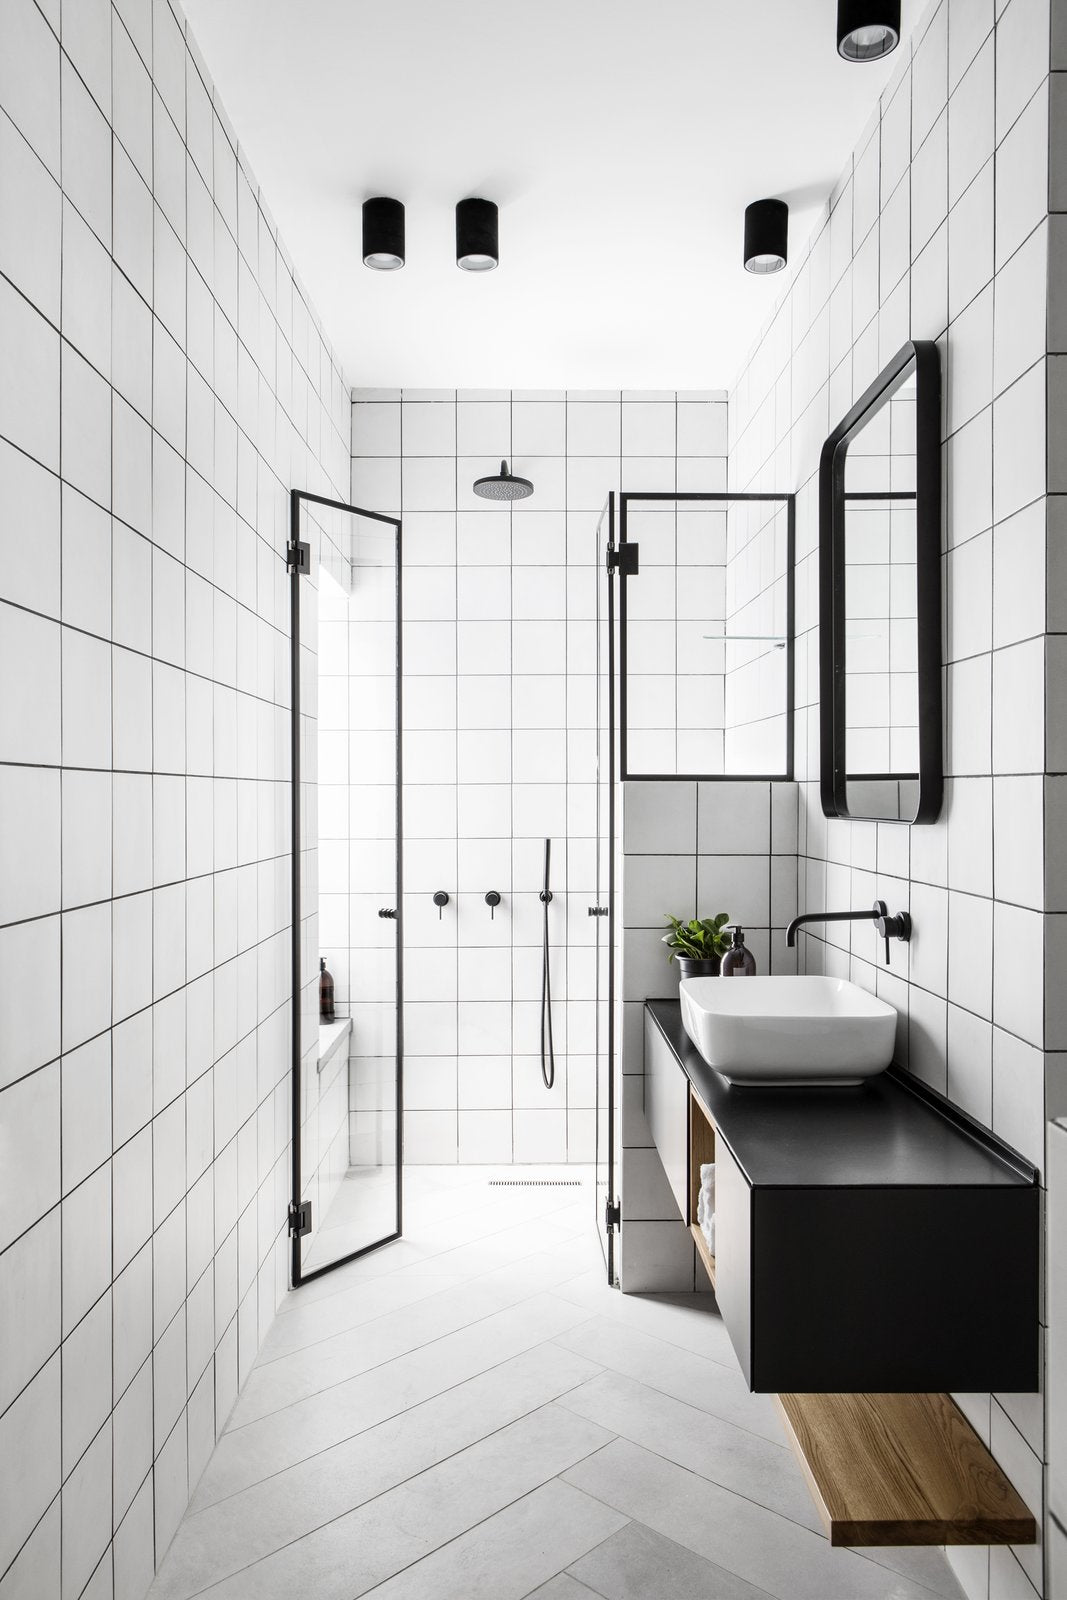 Modern black and white bathroom with floating sink unit